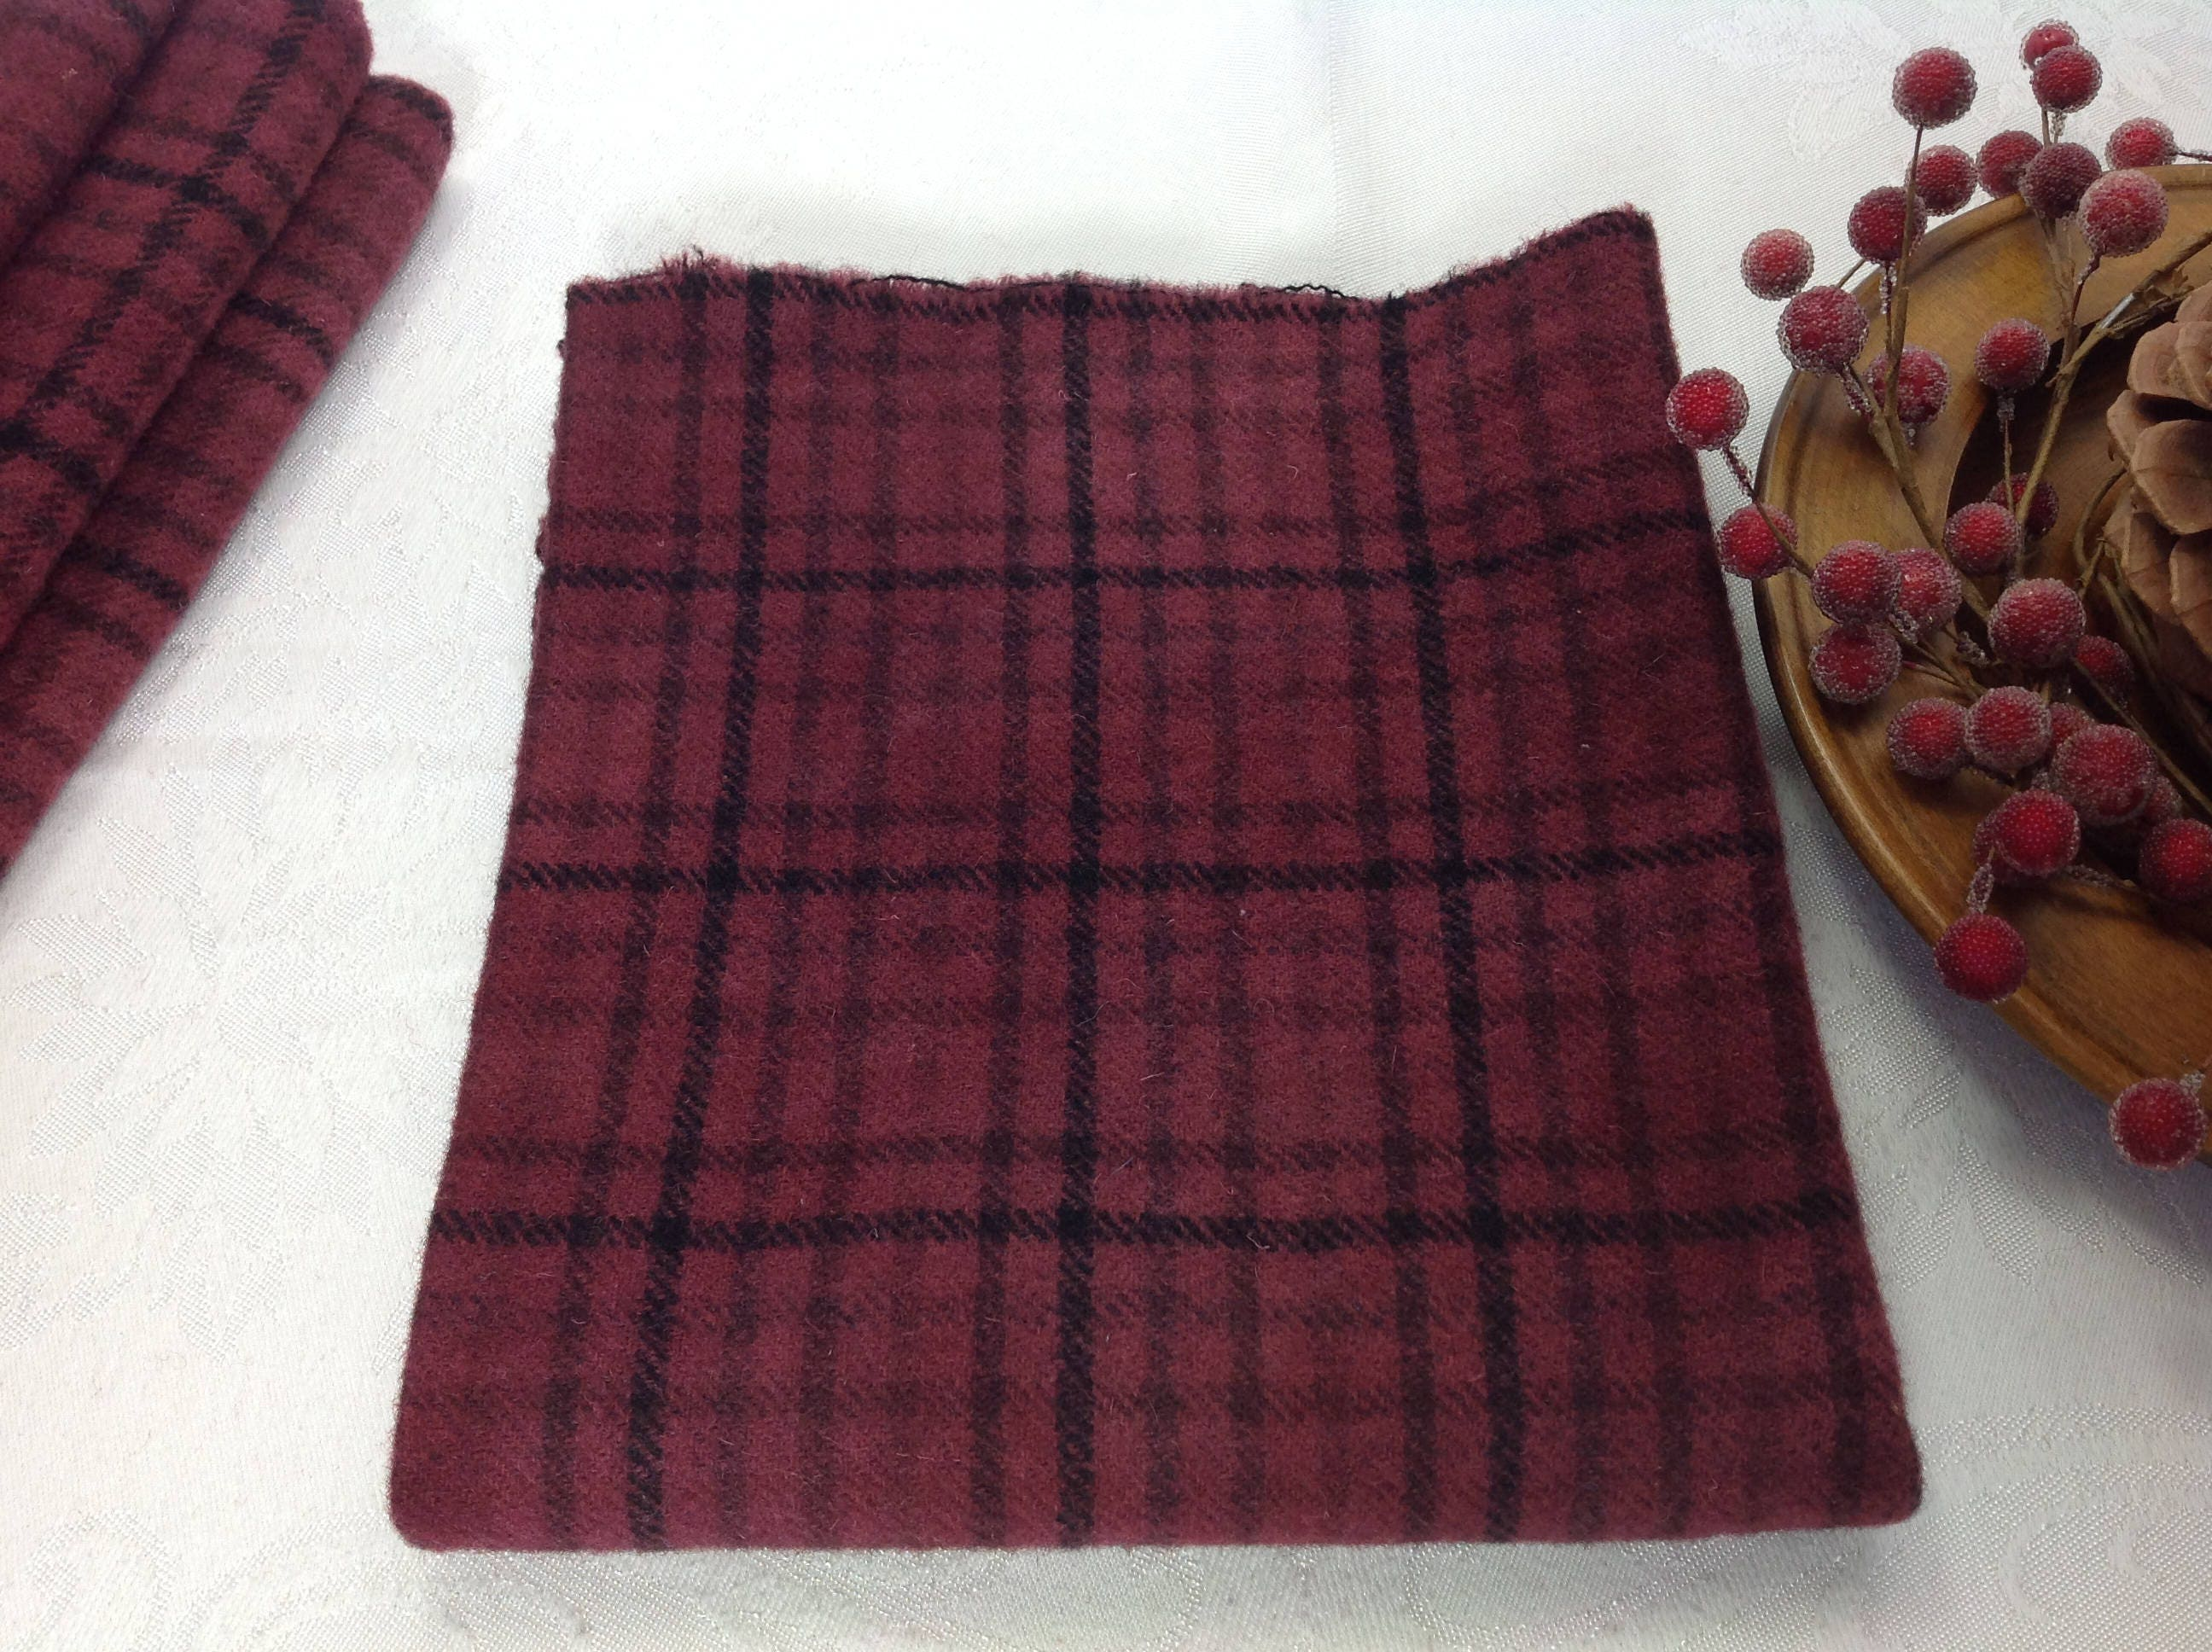 1//4 YD 100/% WOOL FOR RUG HOOKING OR WOOL APPLIQUE ~ WINTER RED PLAID